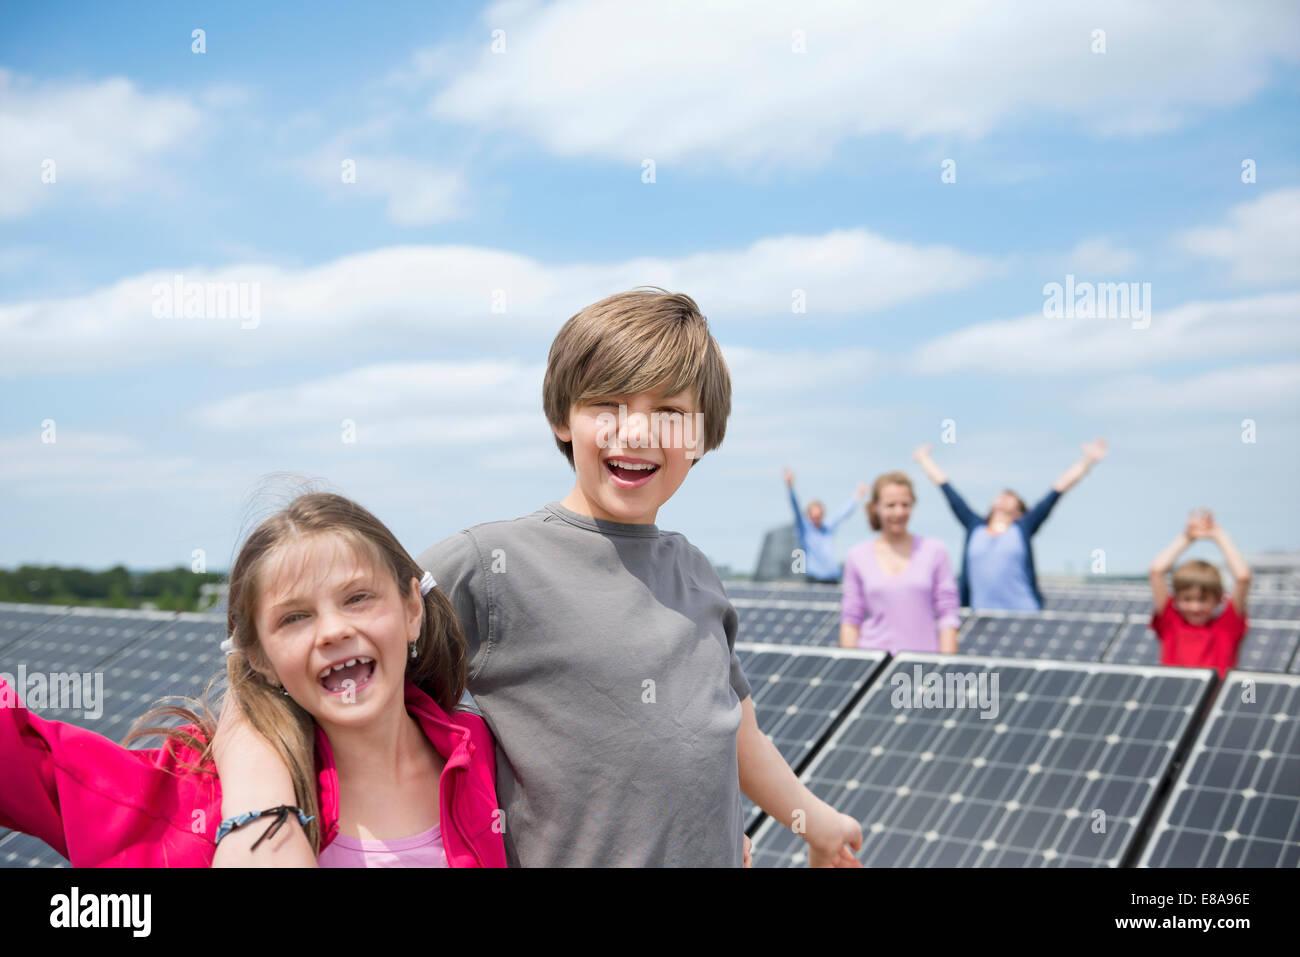 beautiful solar panel kids #9: Family kids photo-voltaic park solar panel happy